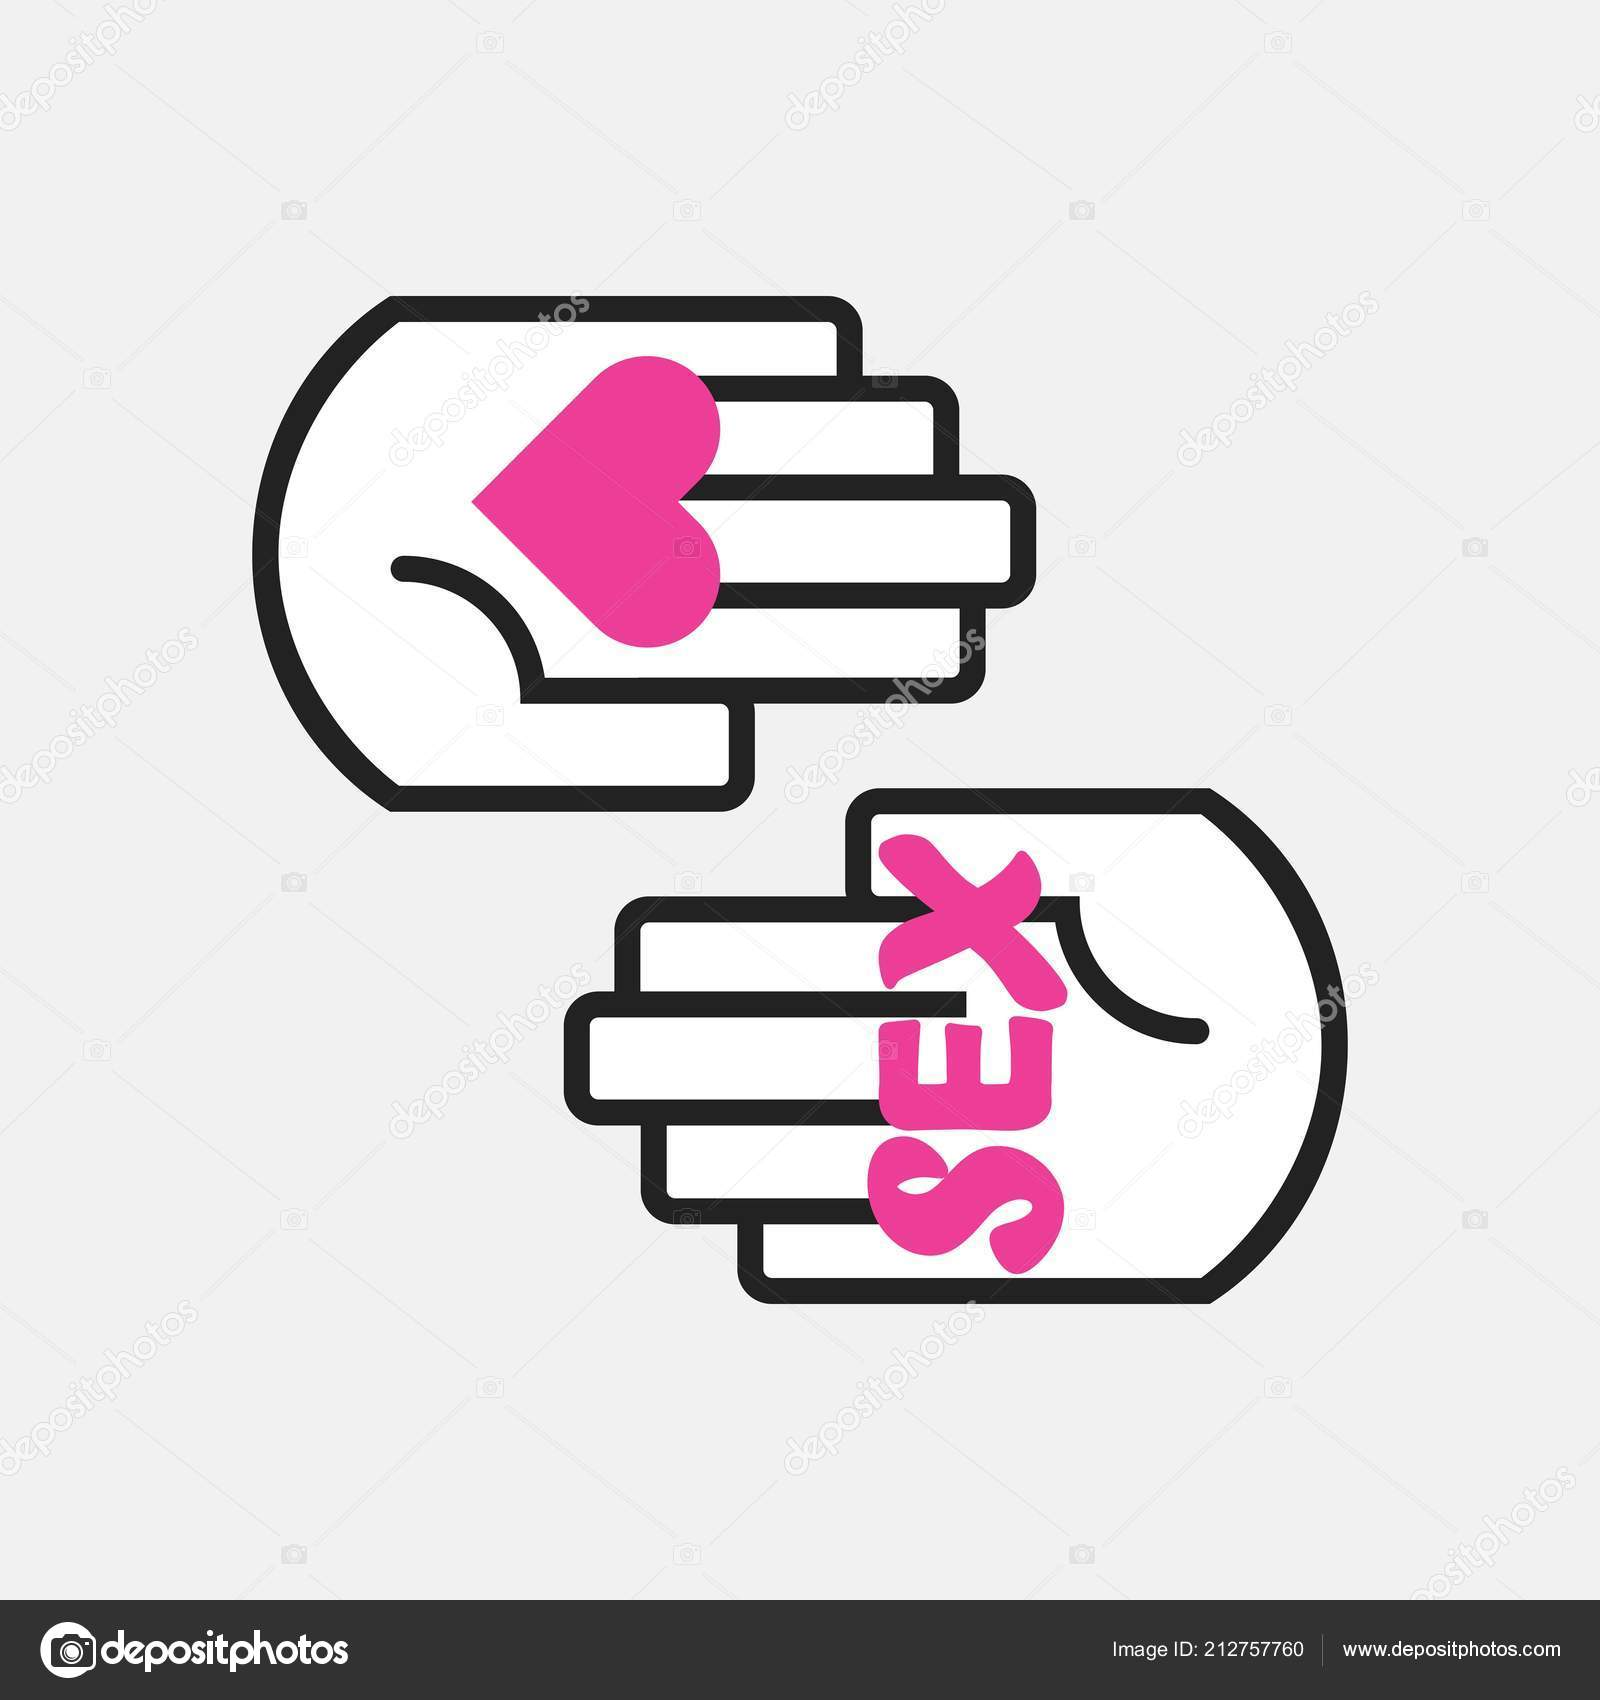 Conceptual Two Black Line Hands Symbol Holding Pink Heart Word